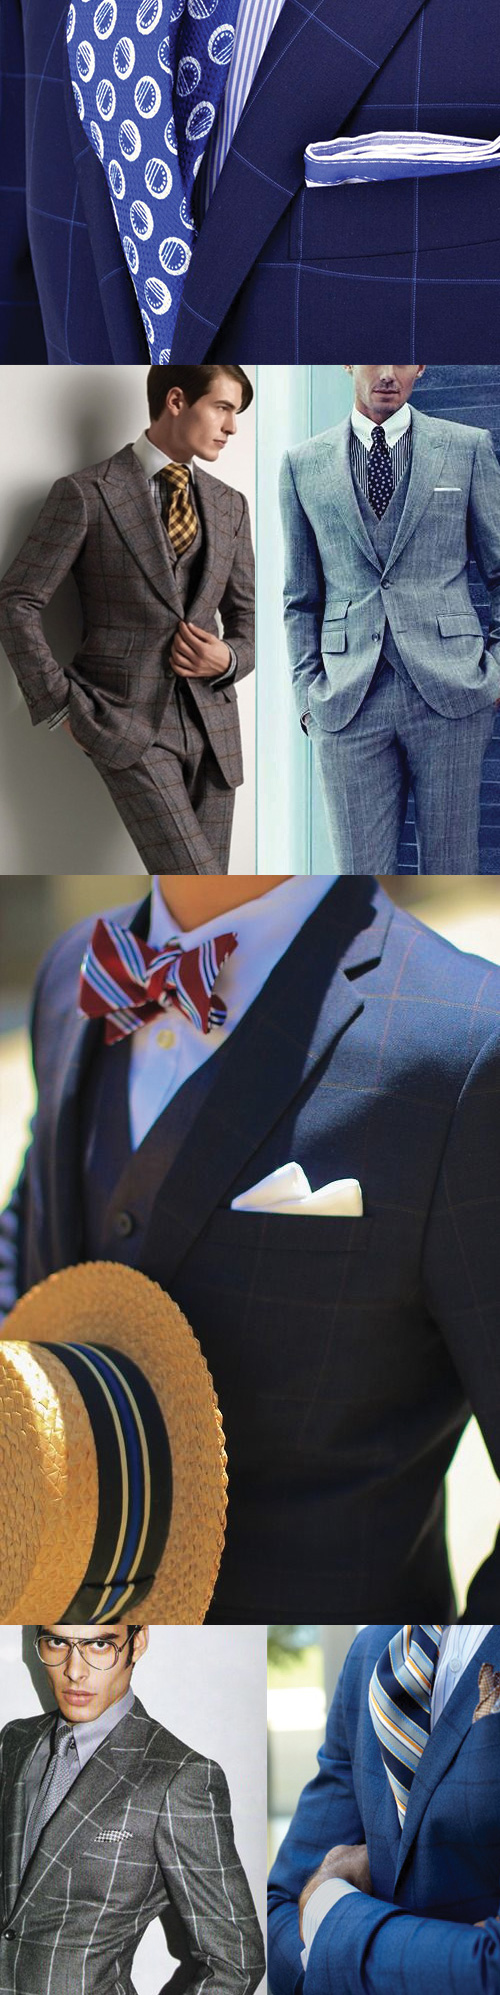 The Classic Window Pane Pattern in Menswear